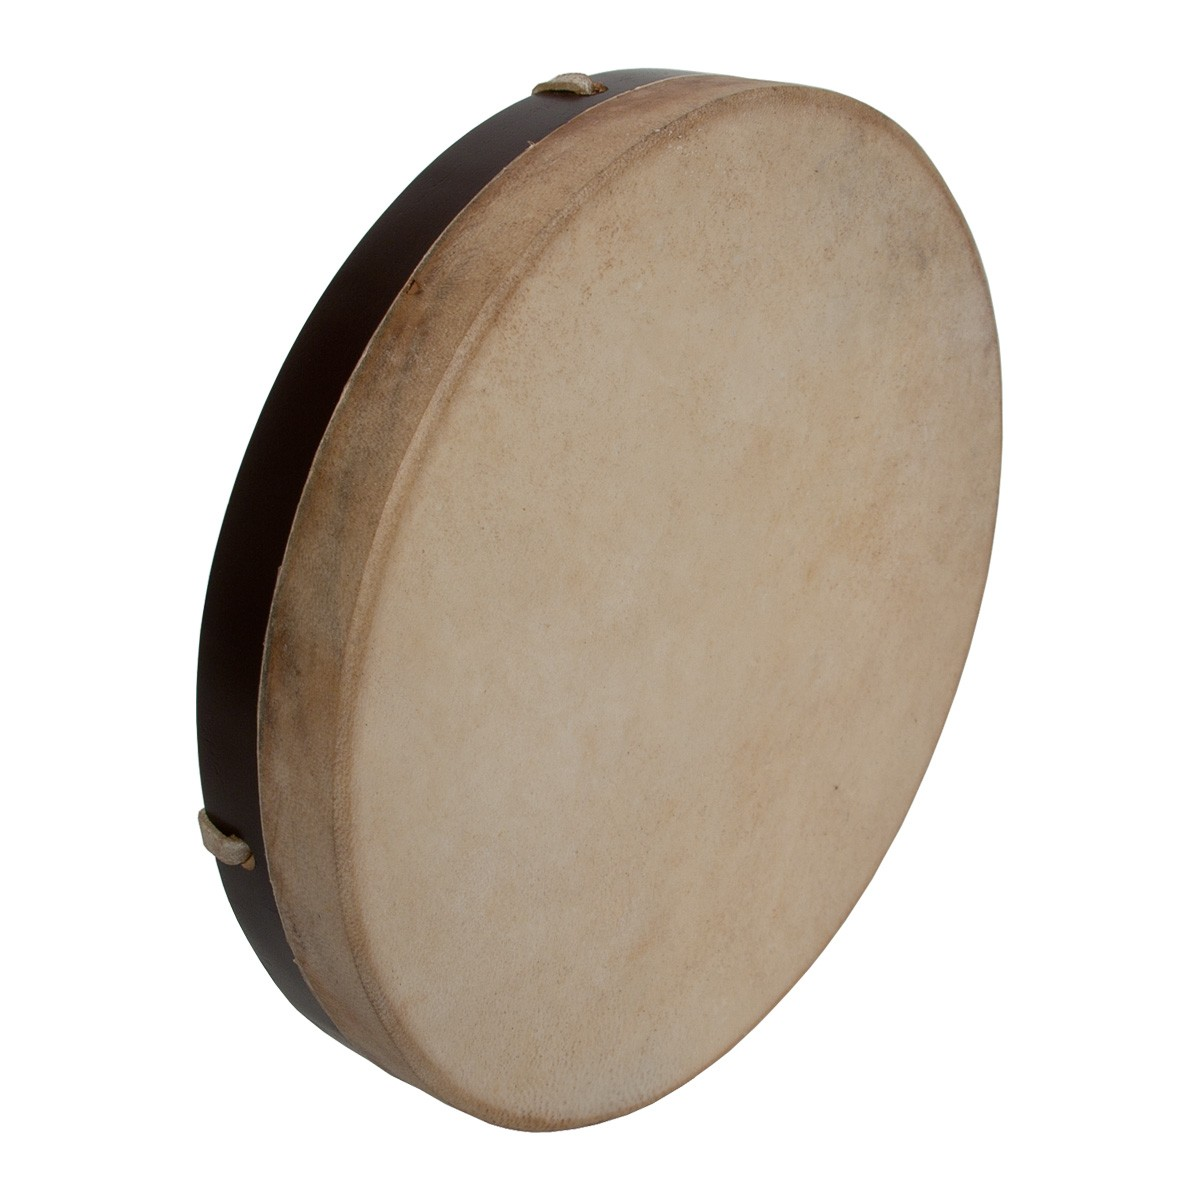 DOBANI Pretuned Goatskin Head Wood Frame Drum w/ Beater 12'x2'